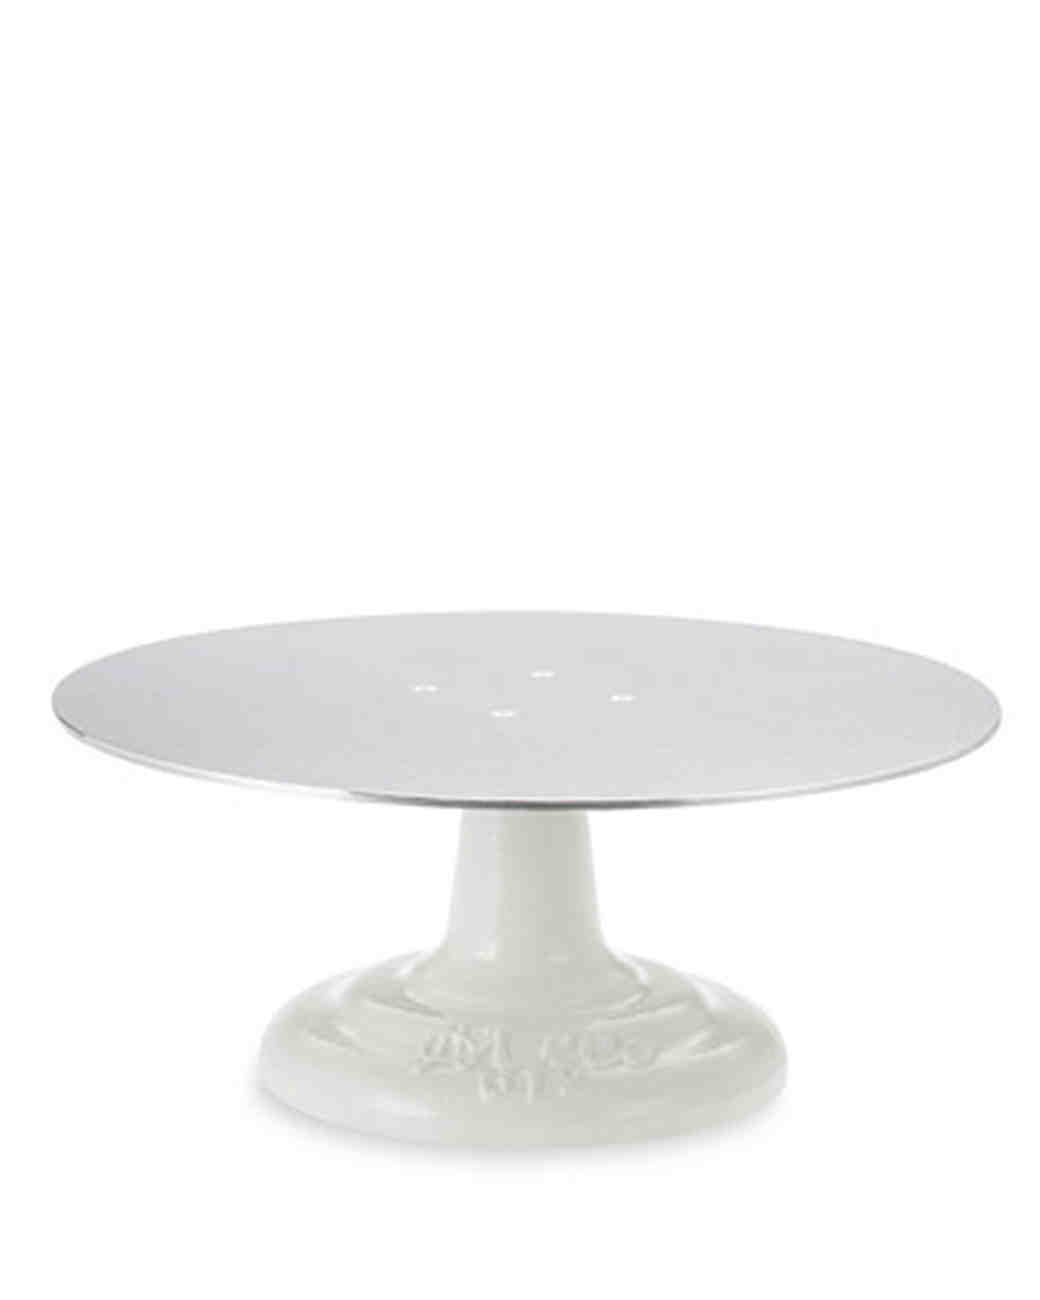 msw_registry_ateco_cake_stand_12.jpg